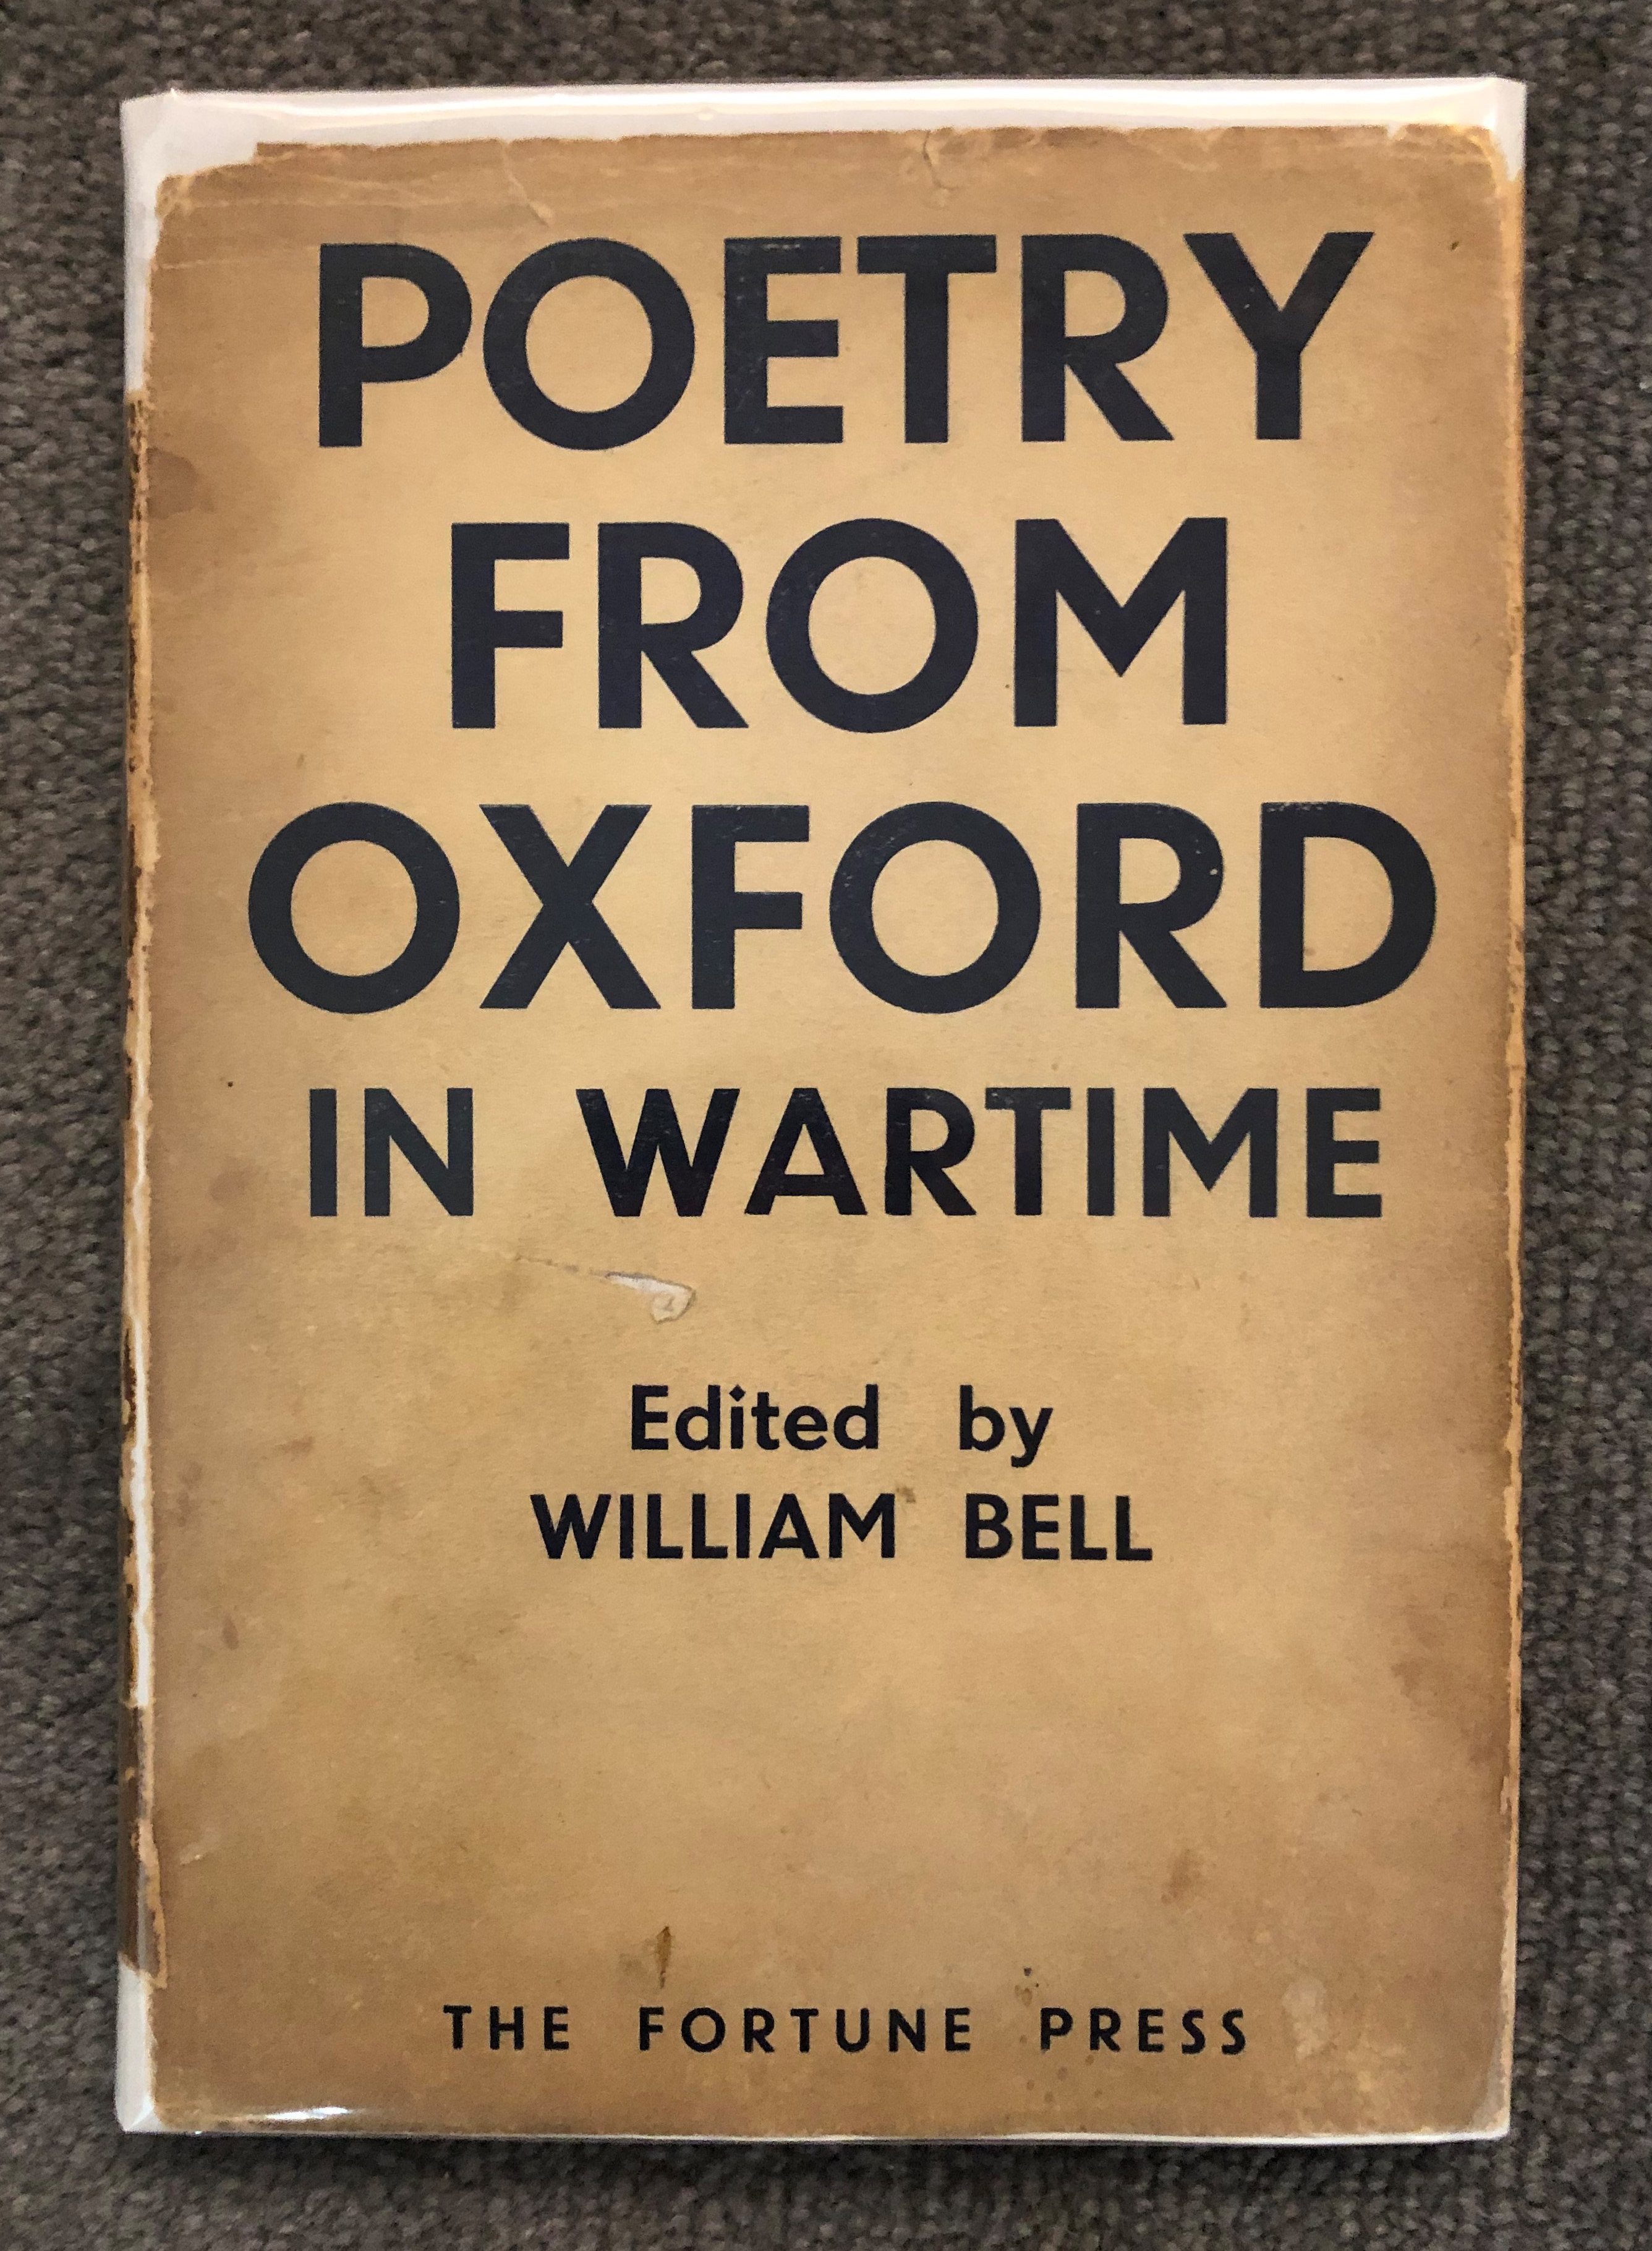 image shows a book cover with the title Poetry from oxford in Wartime printed in large black font